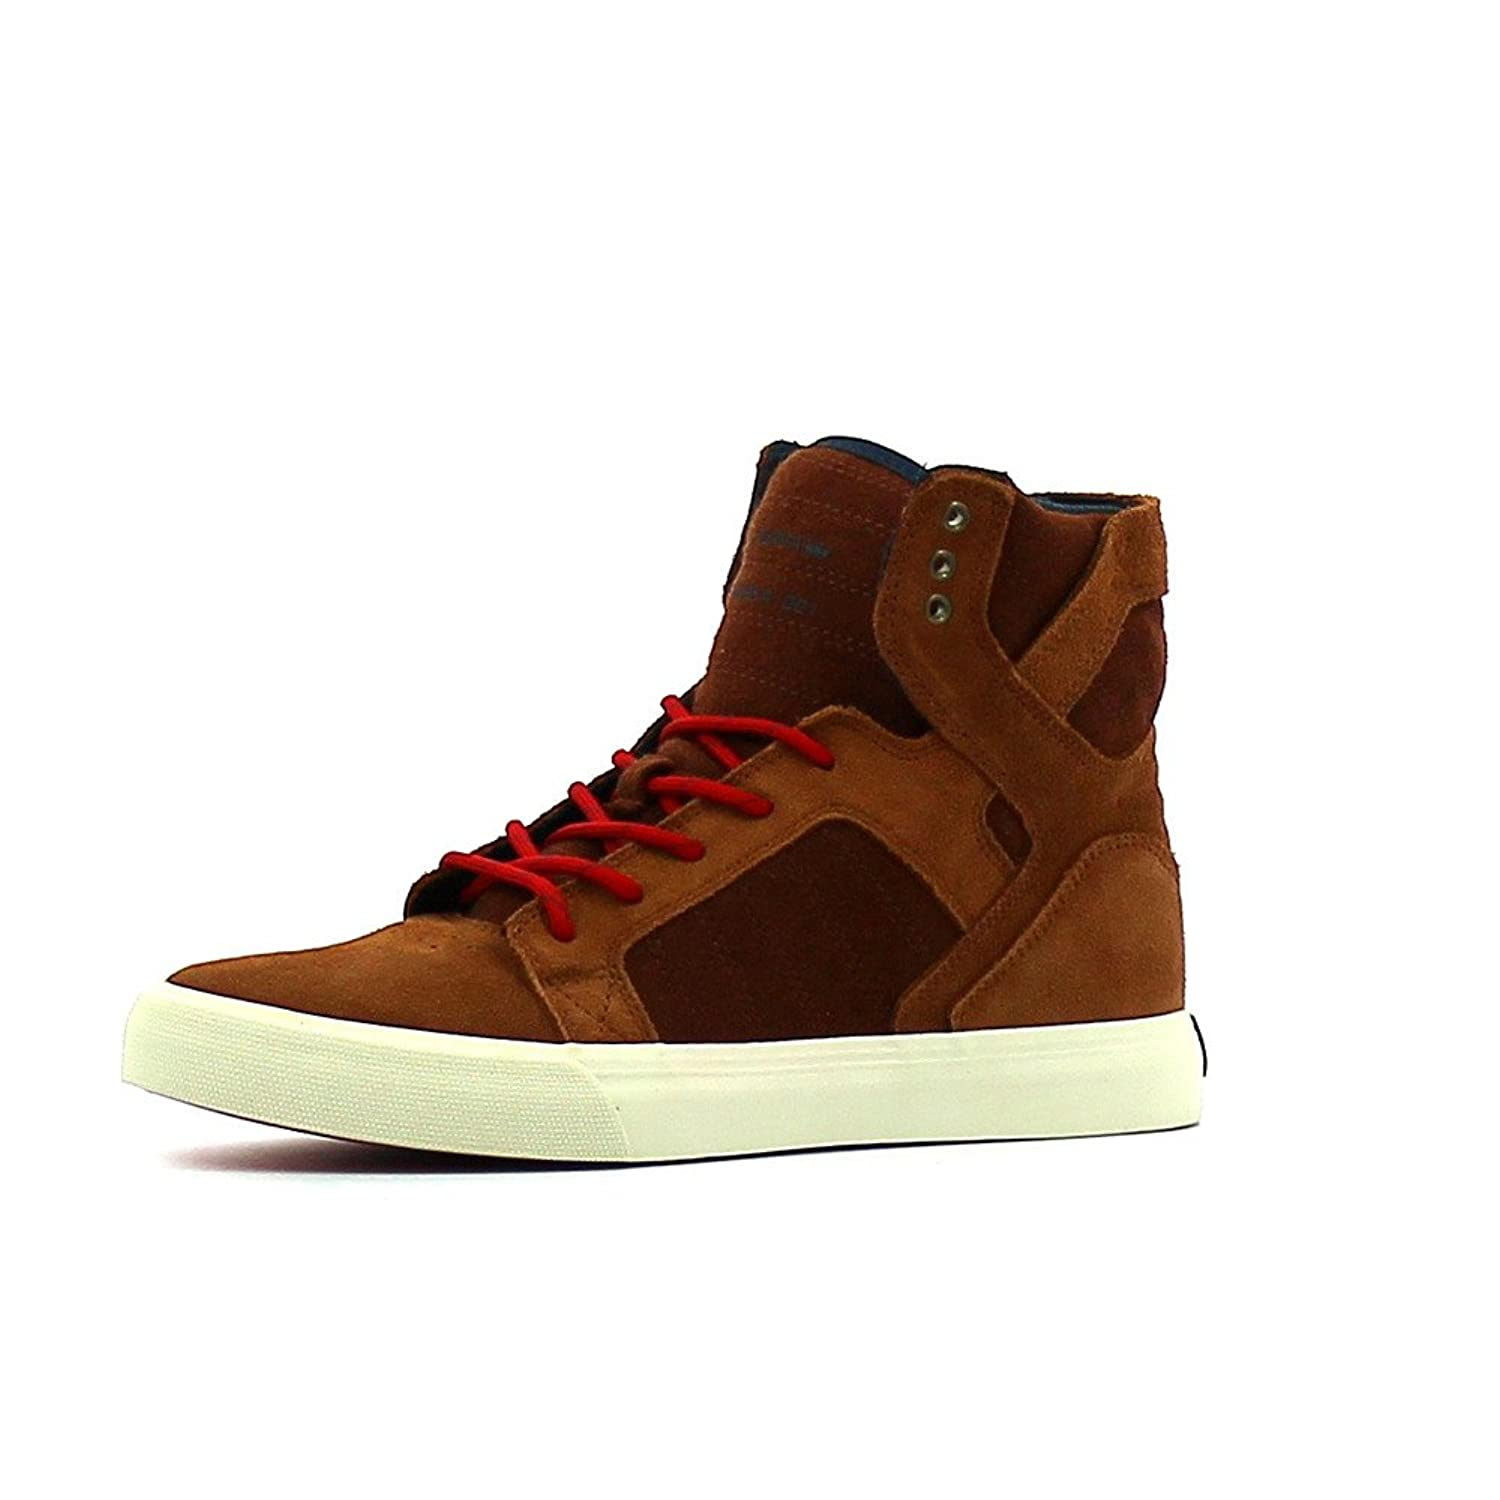 [Supra] Chino Low Top Skate Shoes